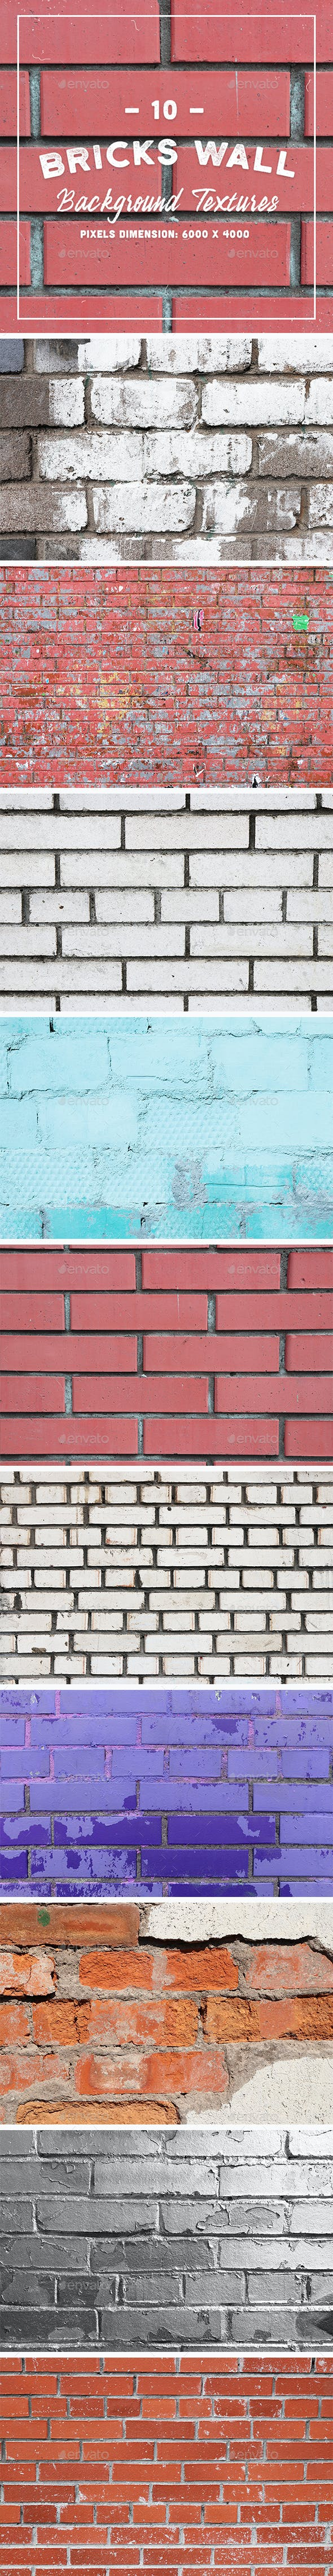 10 Bricks Wall Background Textures - 3DOcean Item for Sale